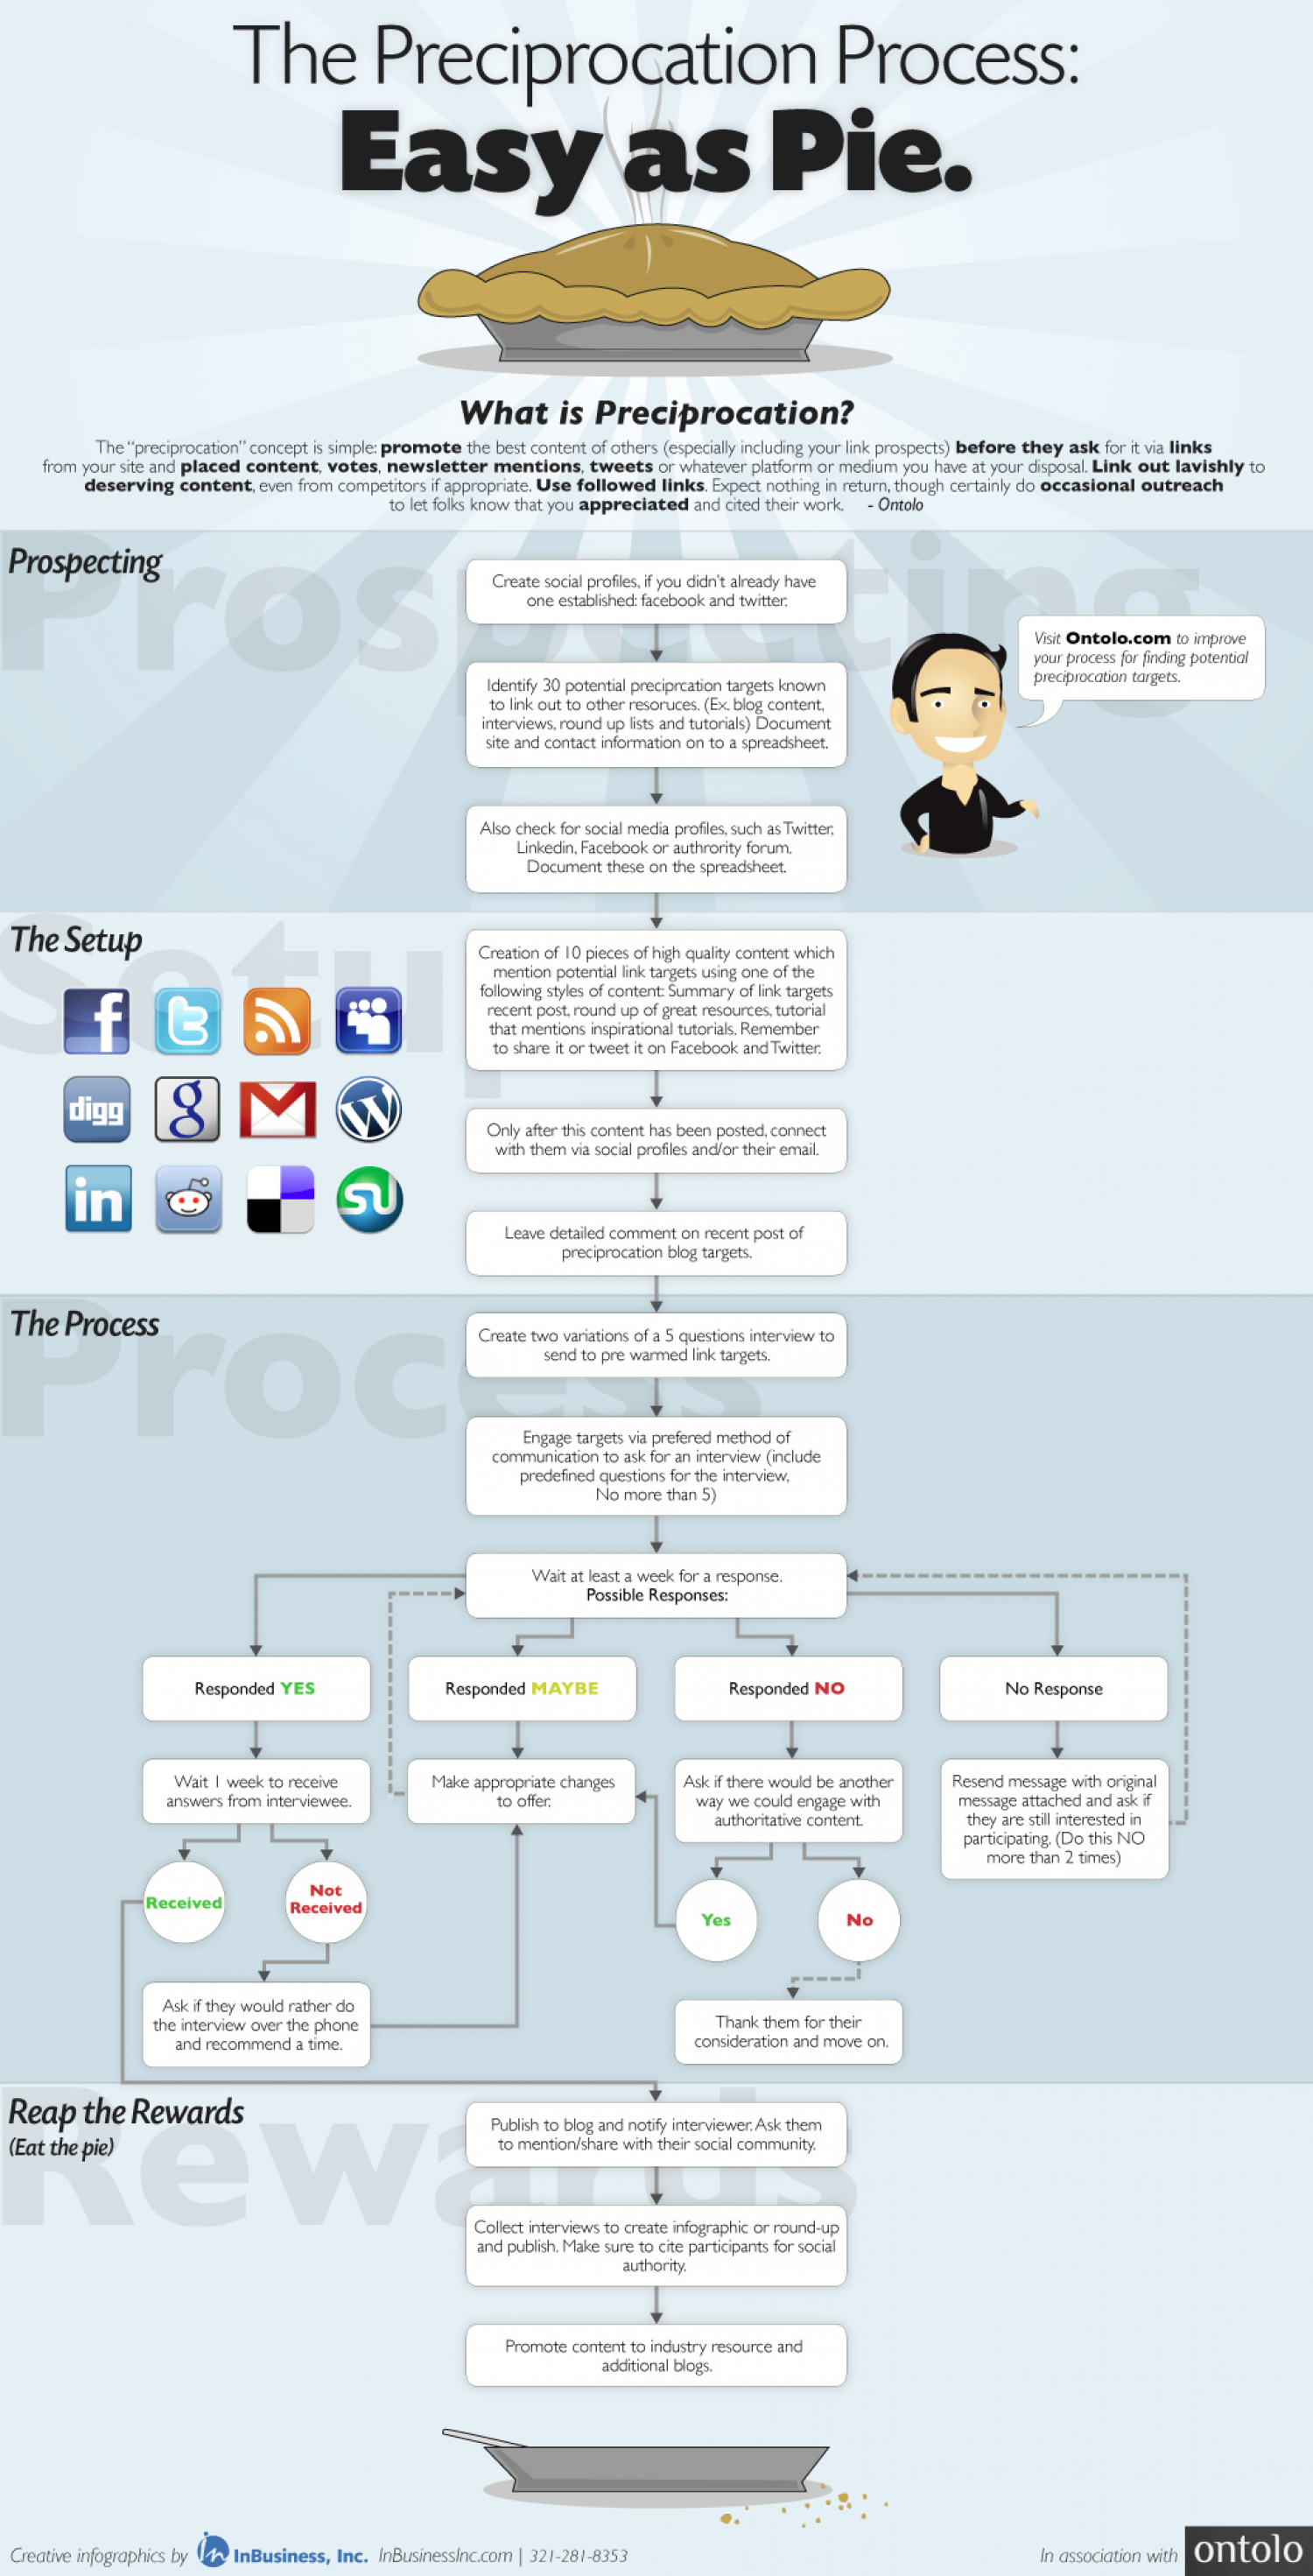 The Preciprocation Process: Easy as Pie Infographic